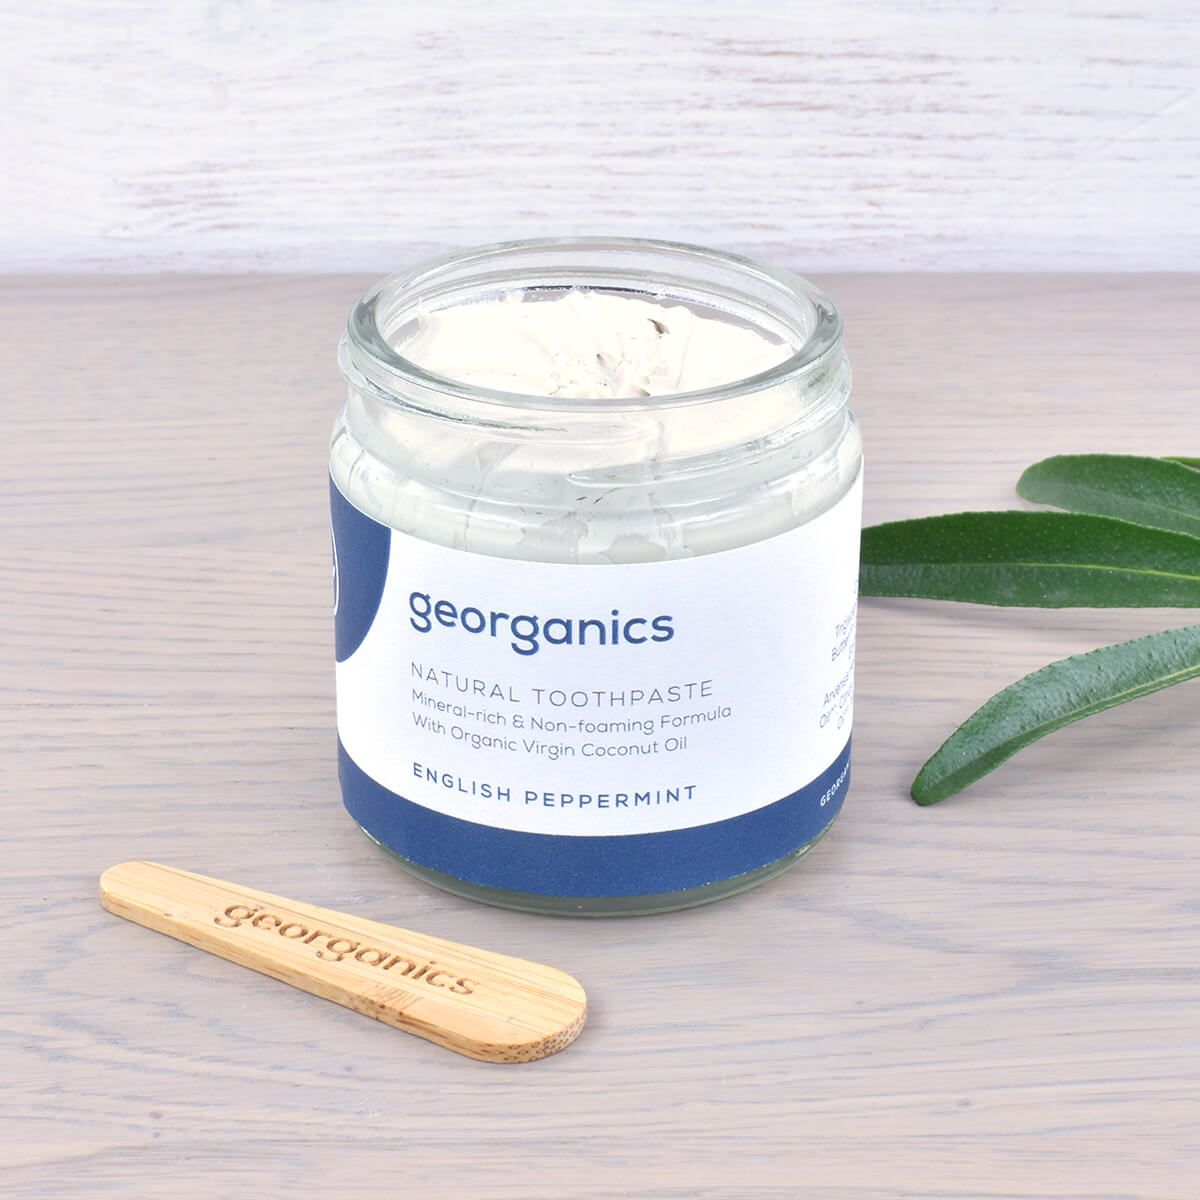 Natural Toothpaste English Peppermint in